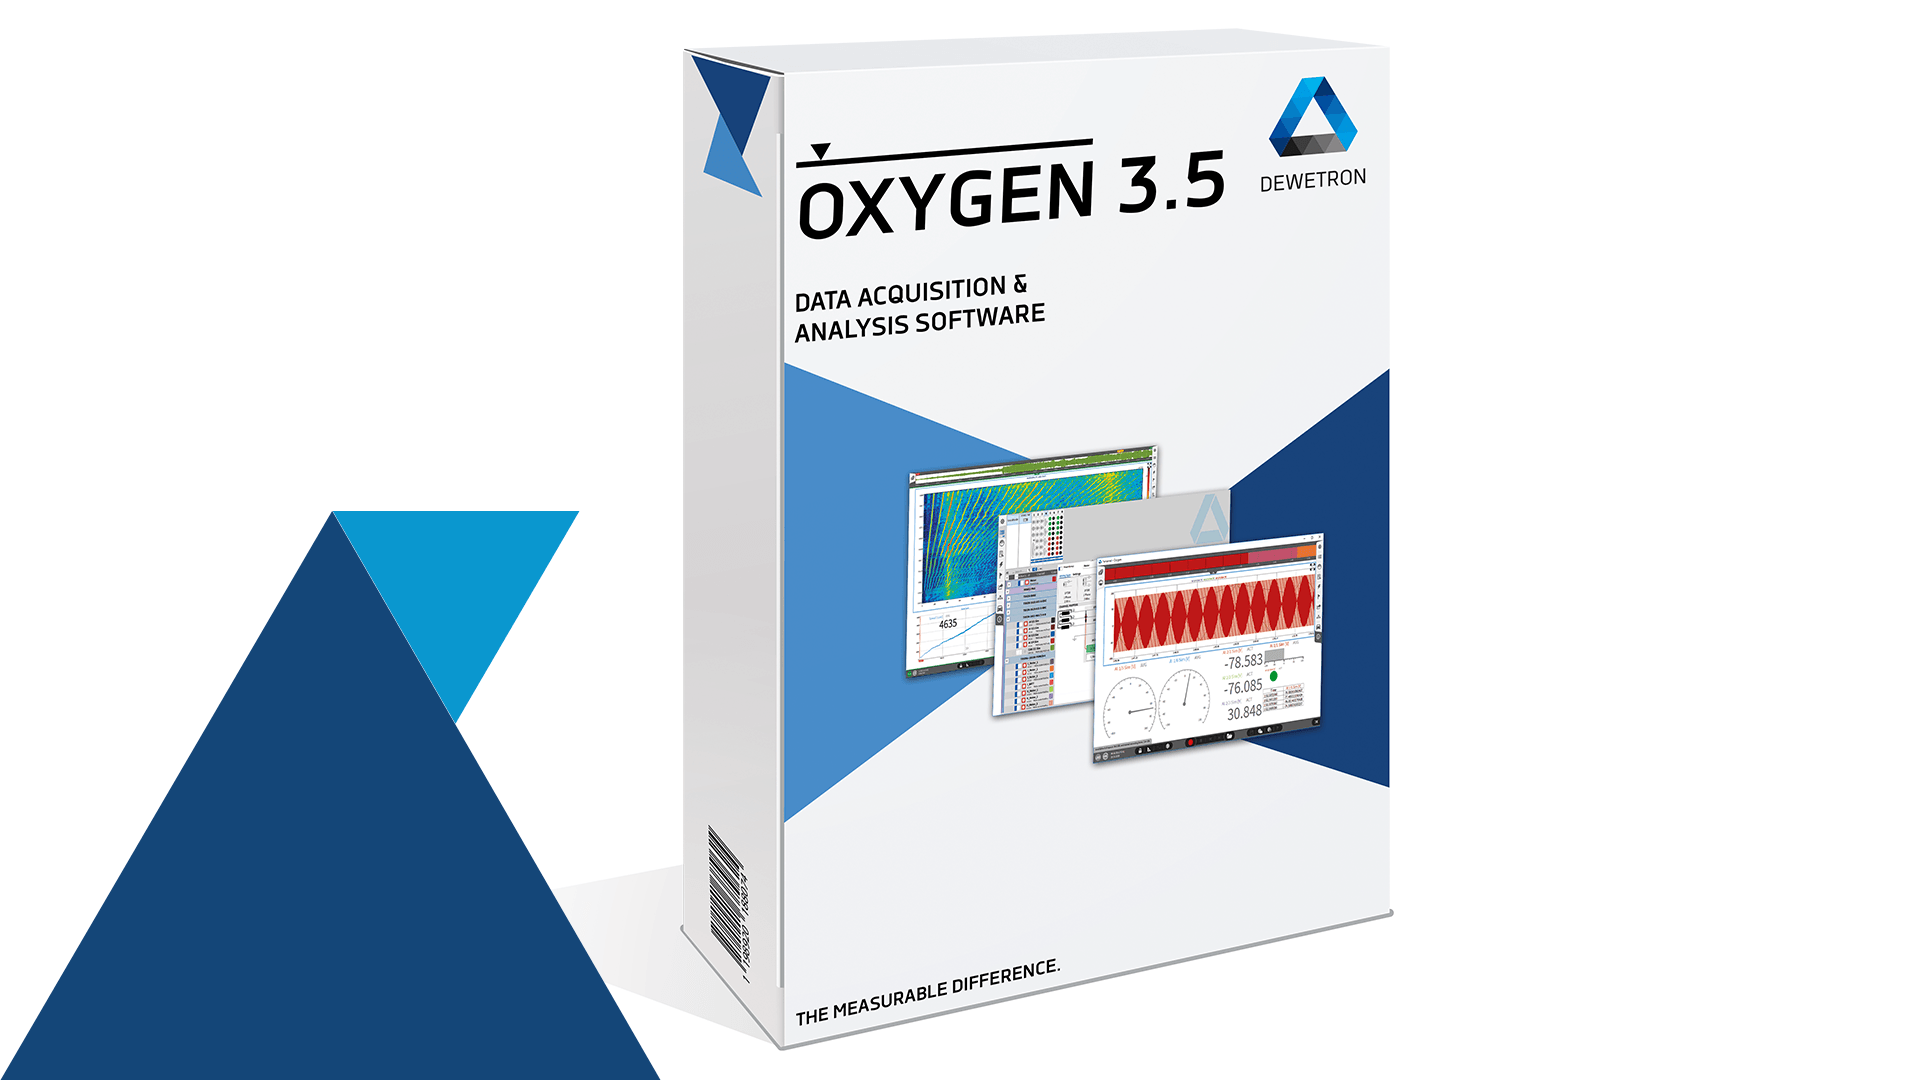 A package of the new OXYGEN 3.5. software which enables synchronous data acquisition